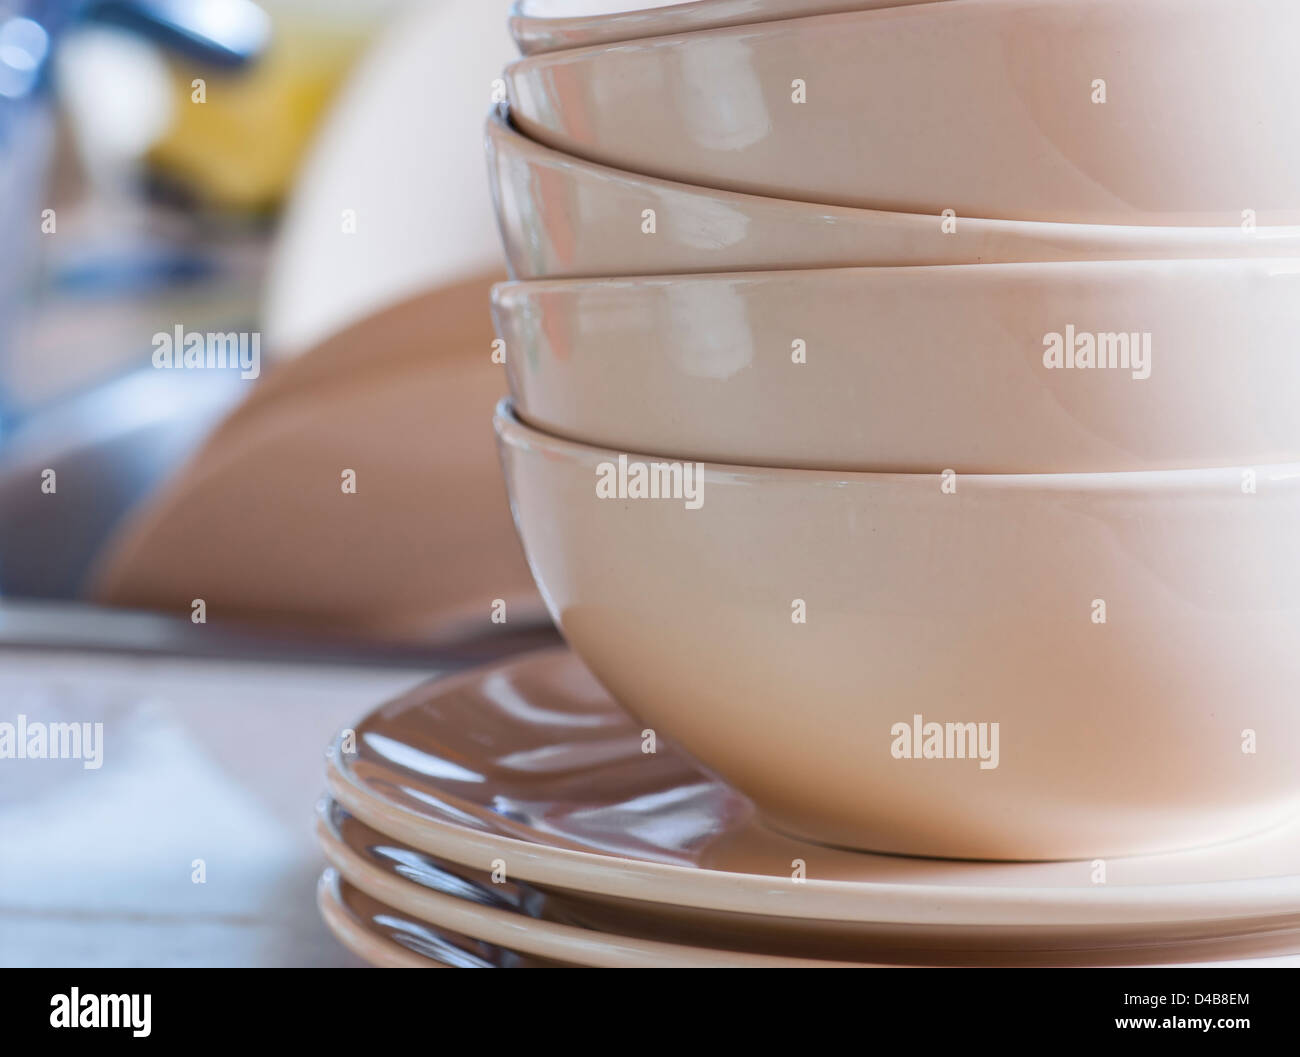 Kitchen Sink With Clean Dishes clean dishes in kitchen sink stock photo, royalty free image